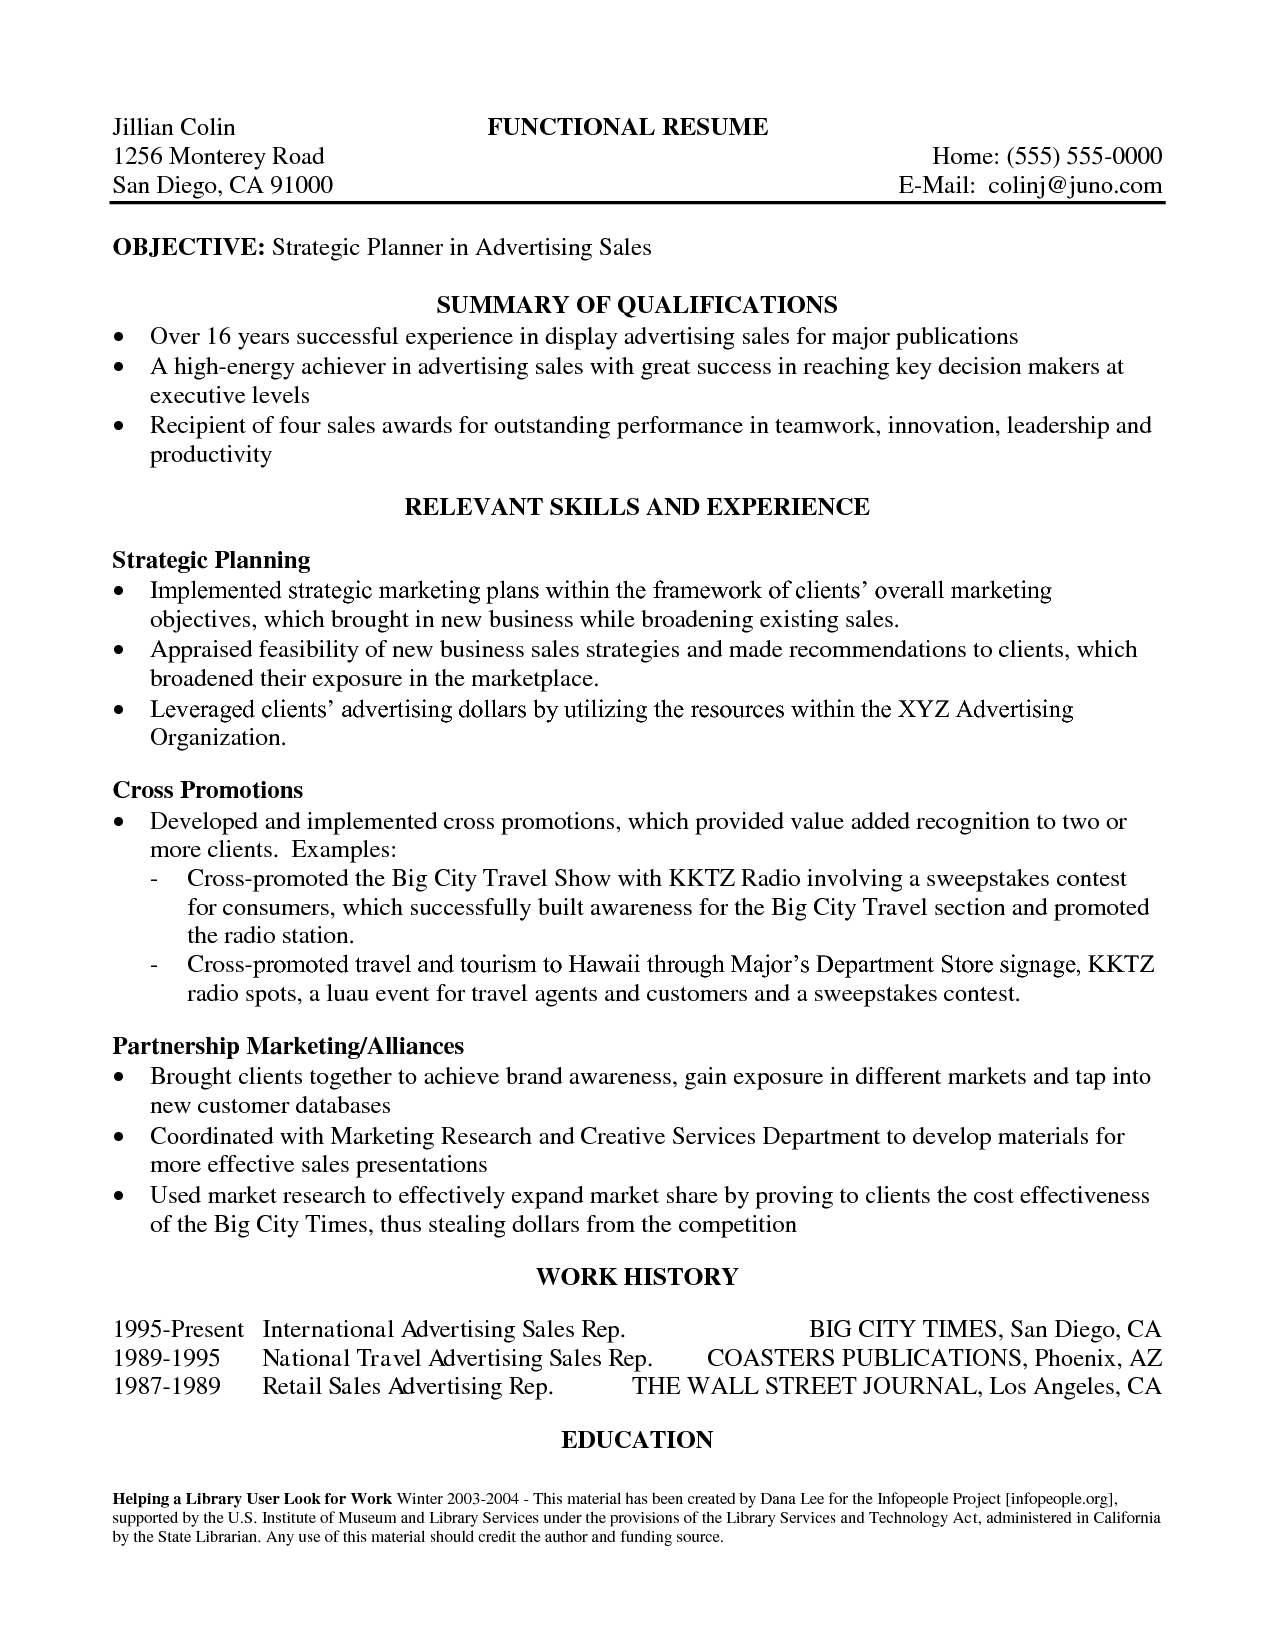 Example Of A Summary For A Resume Gorgeous Resume Examples Summary  Resume Examples  Pinterest  Resume Examples